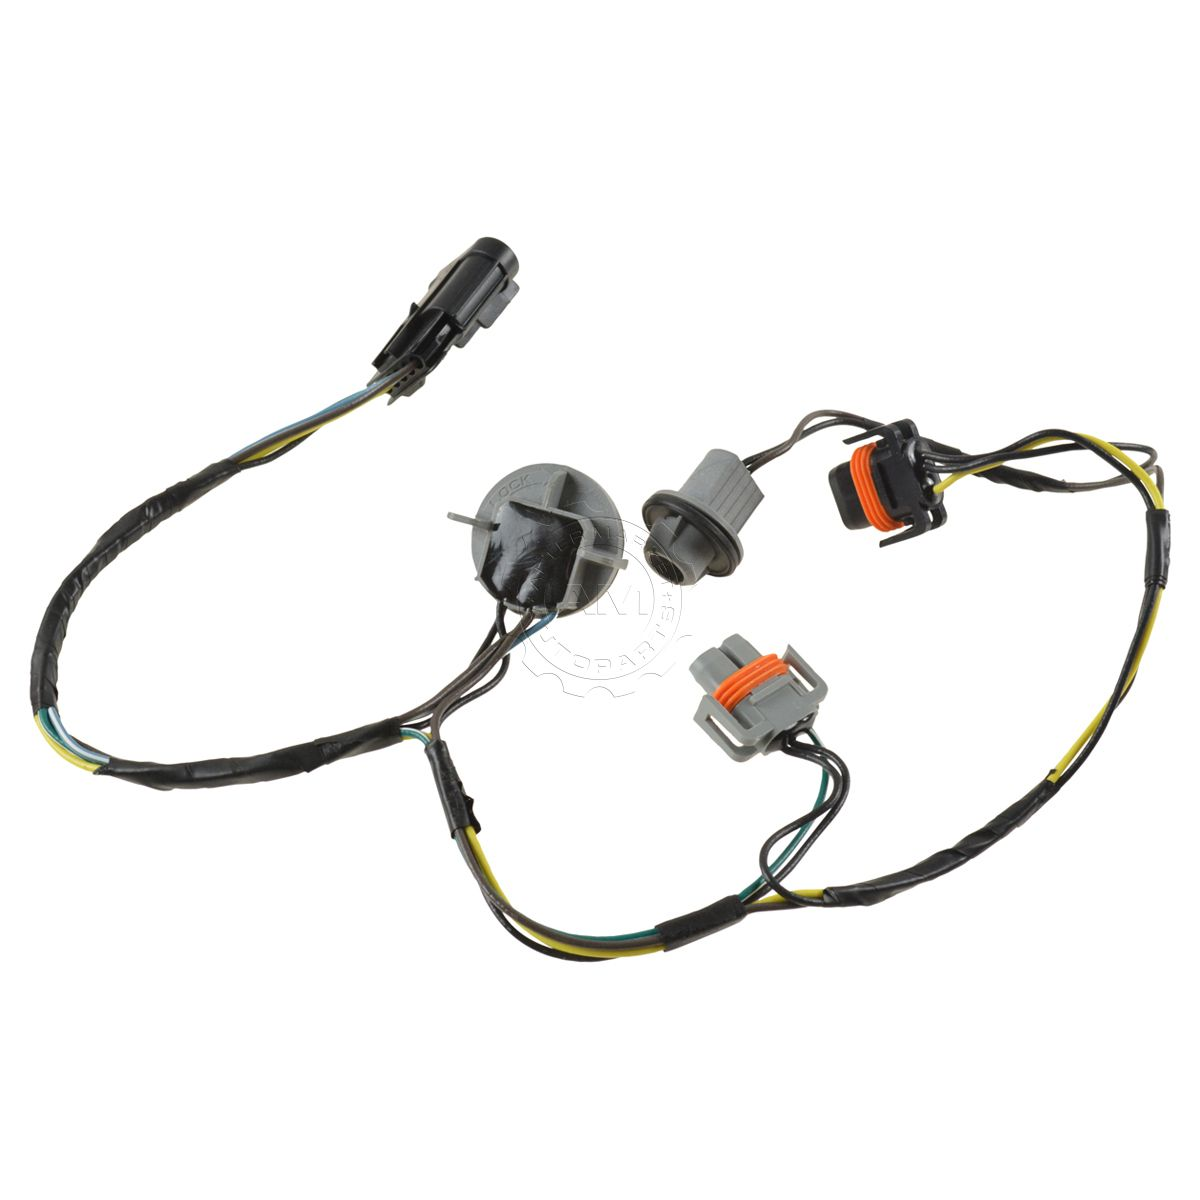 Lexus Headlight Wiring Harness